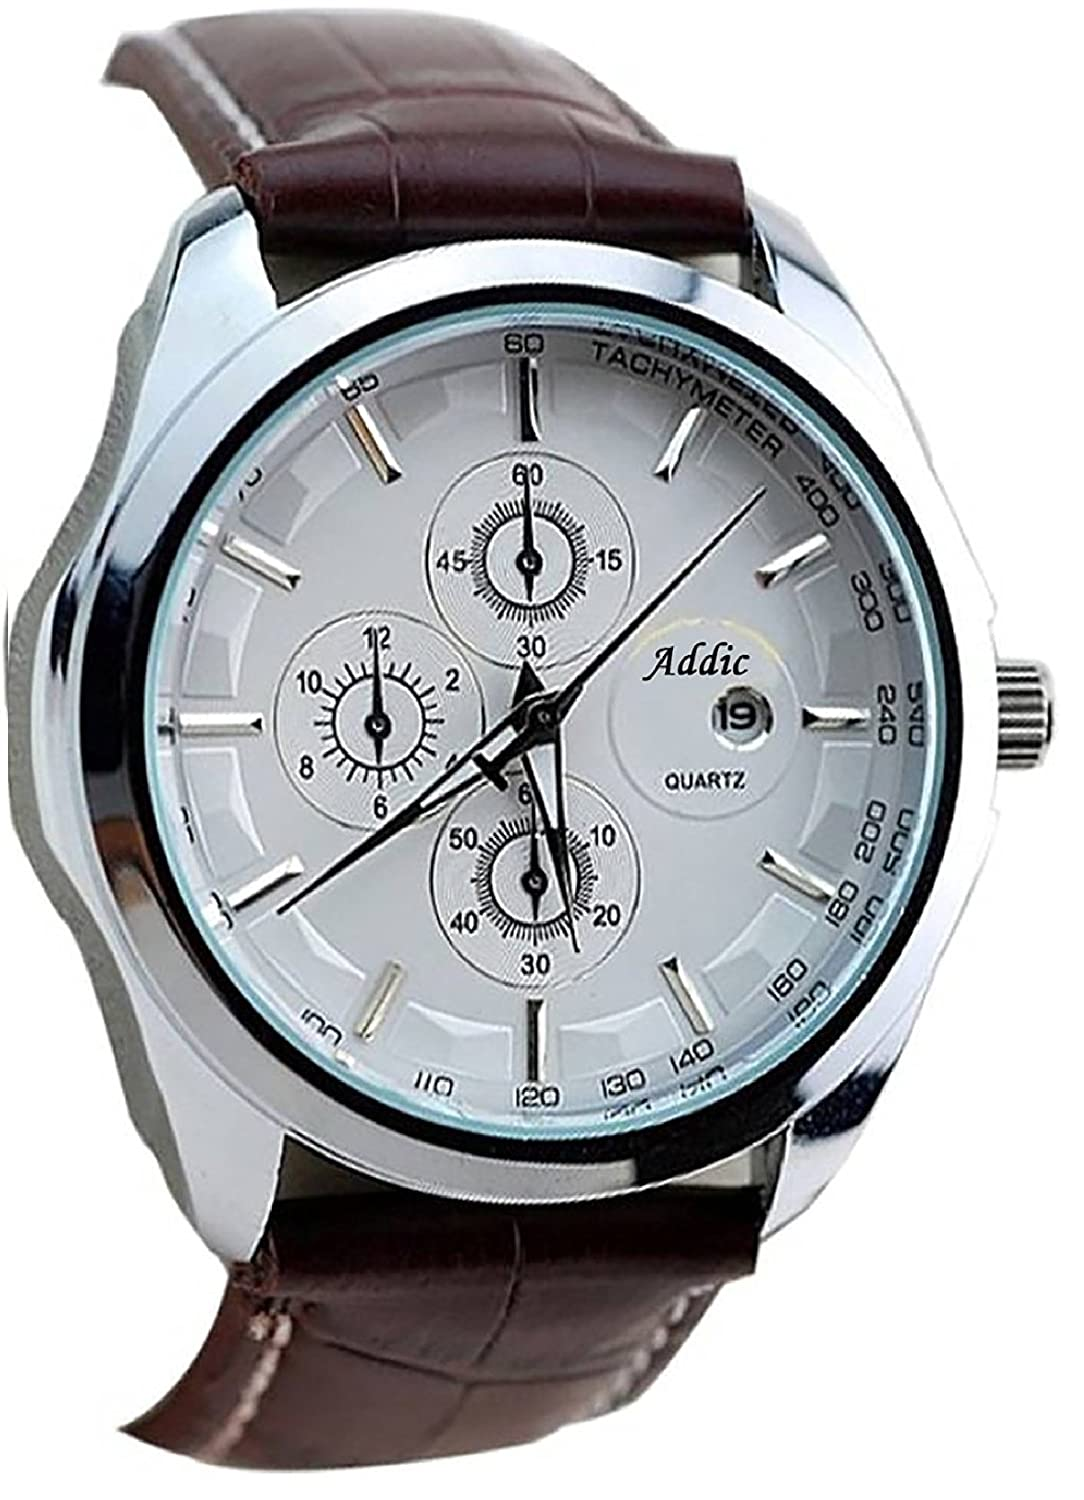 aeedd131600 Buy Addic Analogue Billionaire Limited Edition Watch for Men s   Boys.  Online at Low Prices in India - Amazon.in